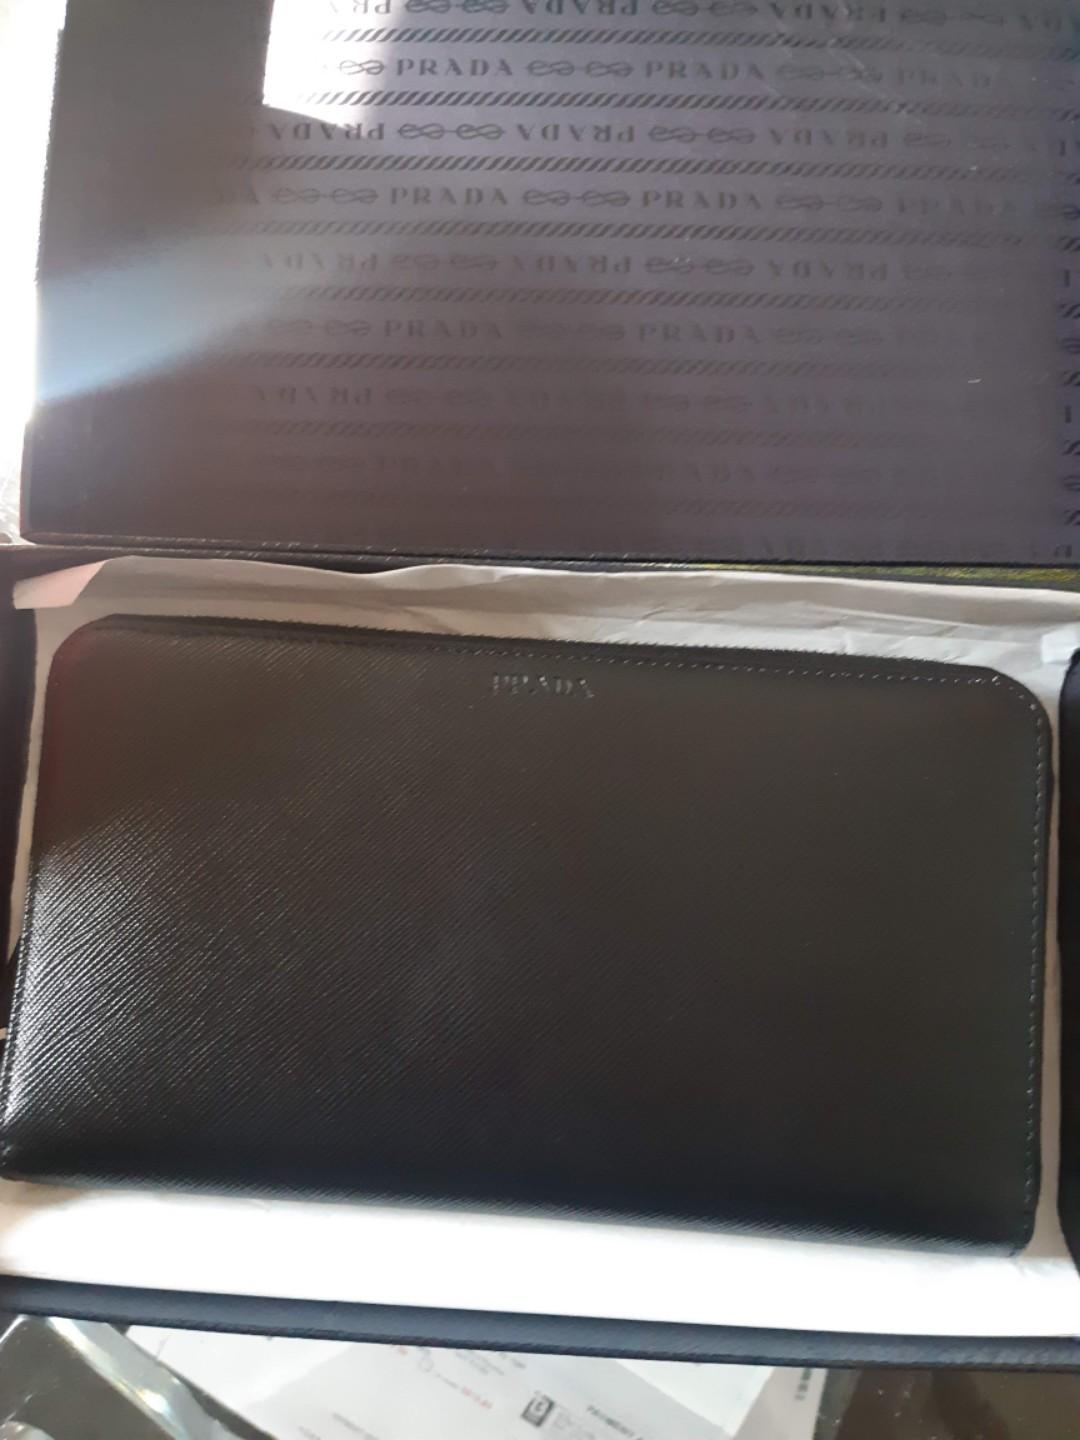 Prada document wallet